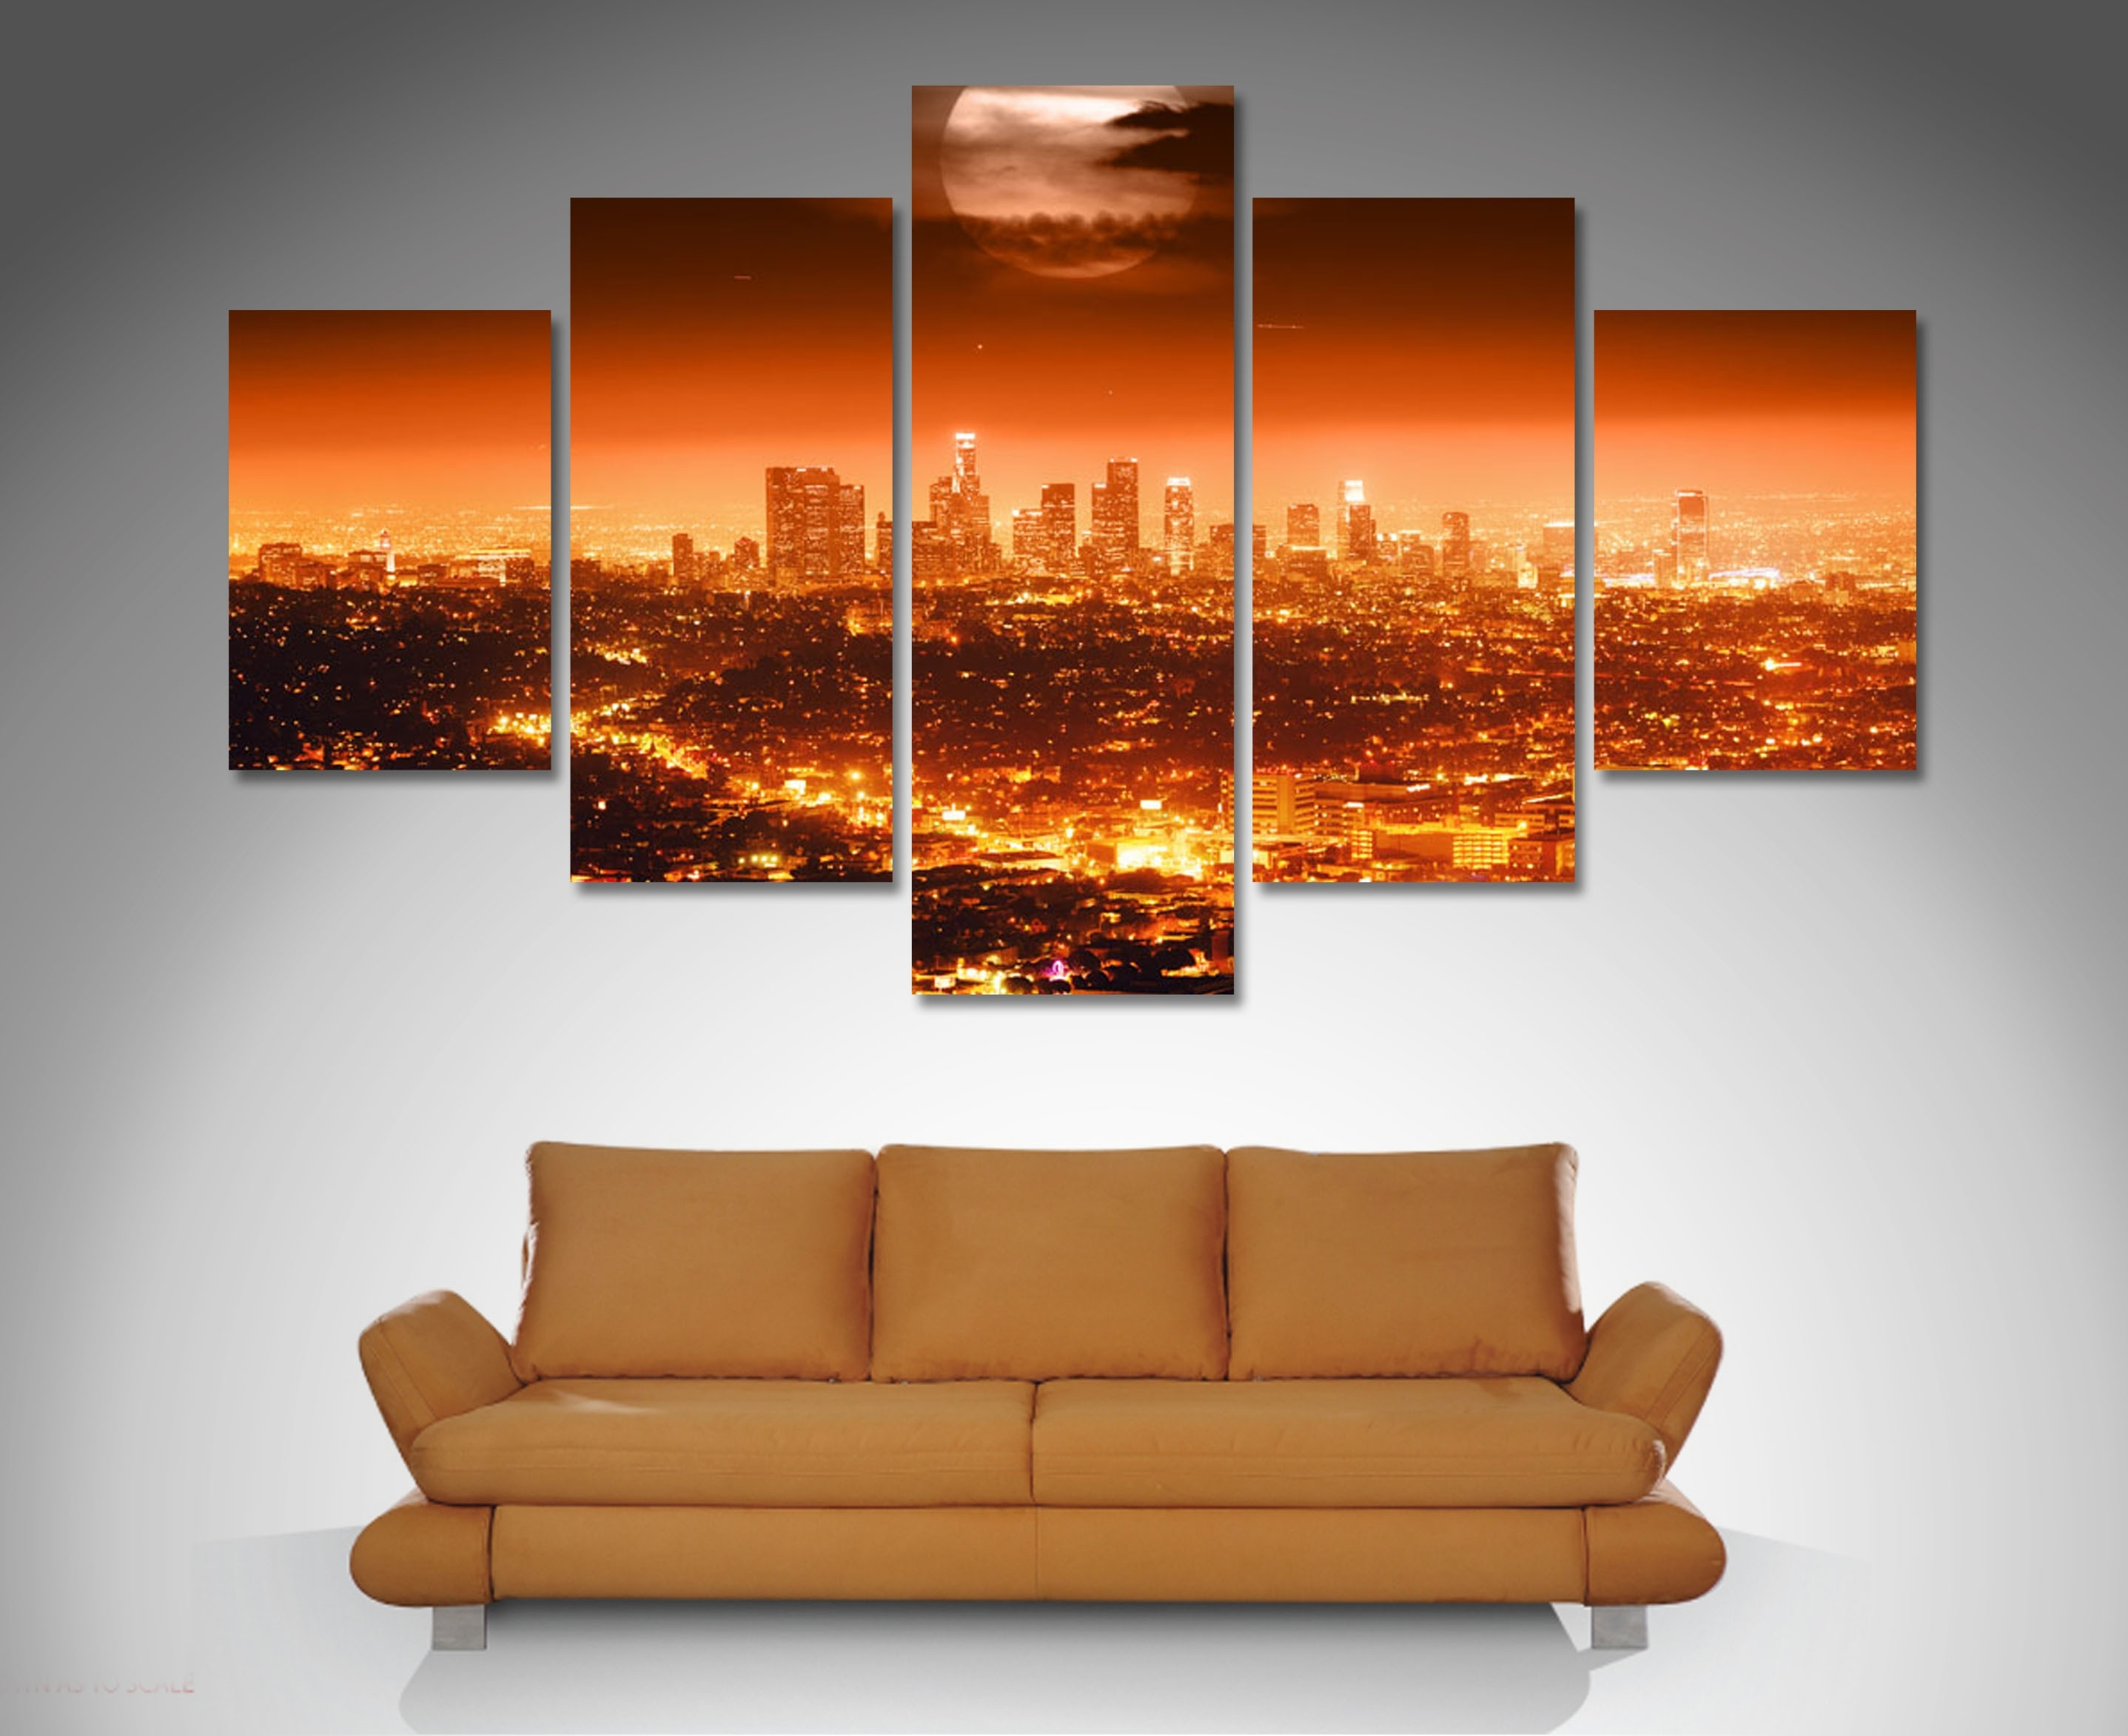 Los Angeles 5 Panel Diamond Shape Canvas Prints Http://www With Regard To Most Up To Date Wall Art Fabric Prints (View 14 of 15)